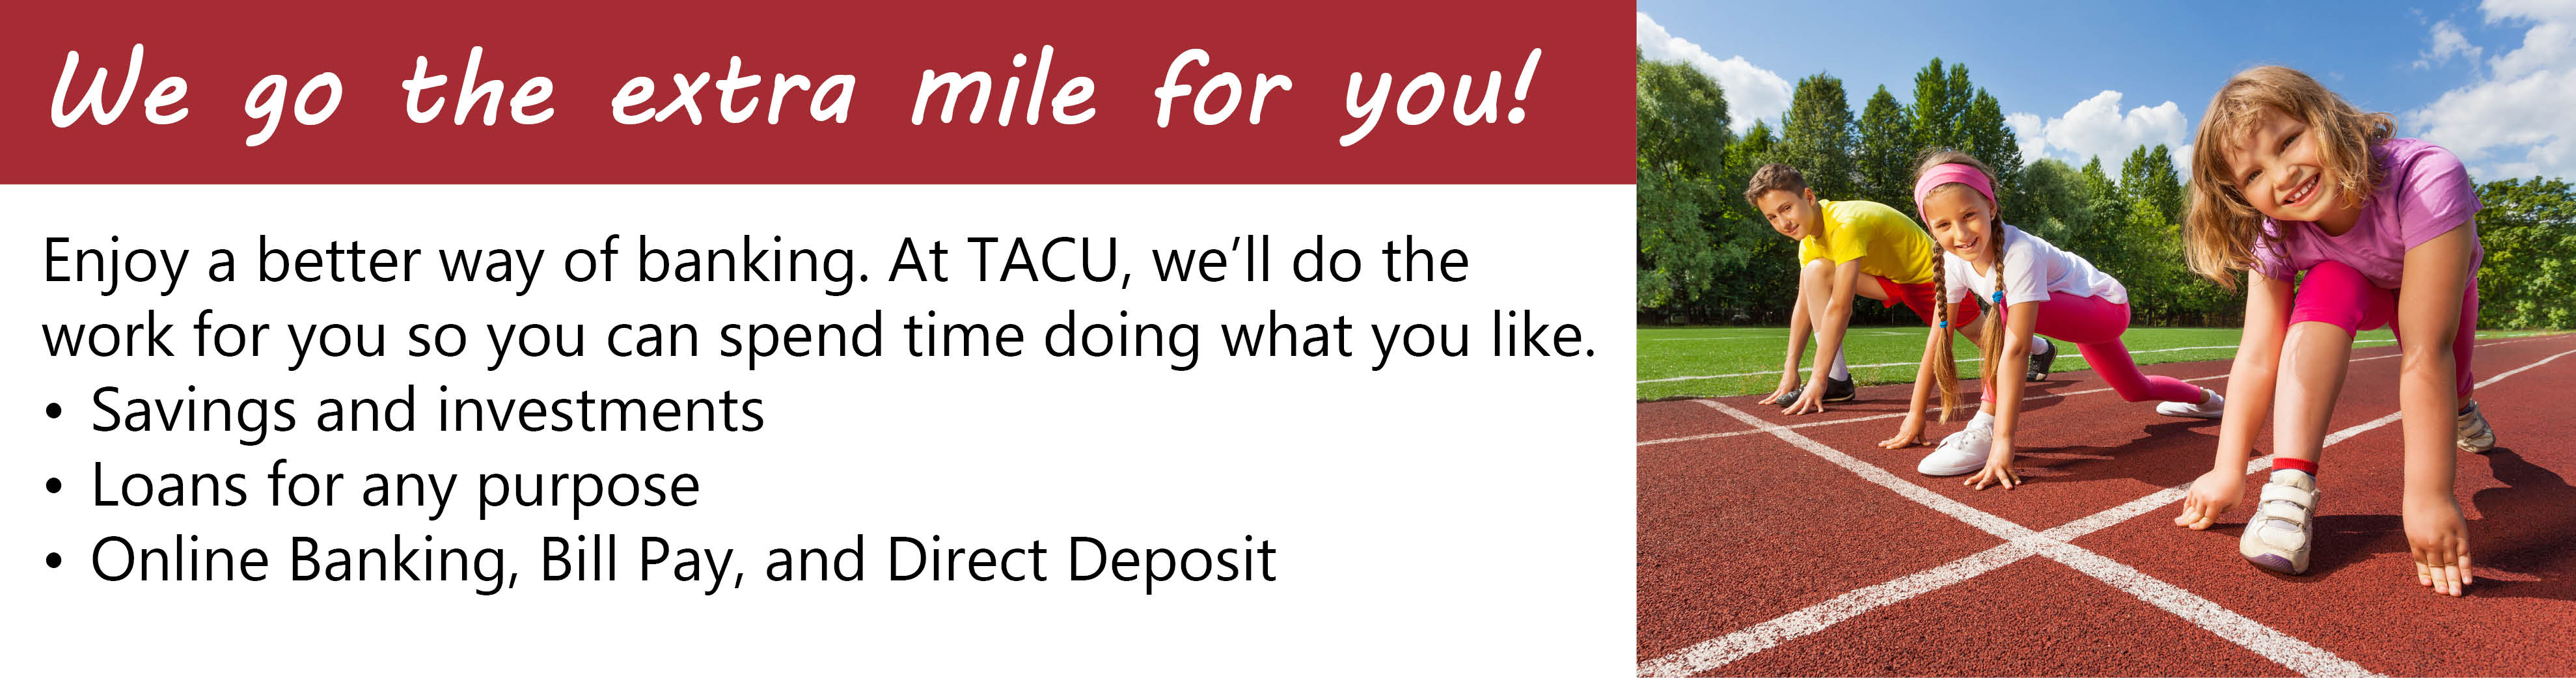 At TACU we'll go the extra mile for you with savings, loans, online banking, bill pay, and direct deposit